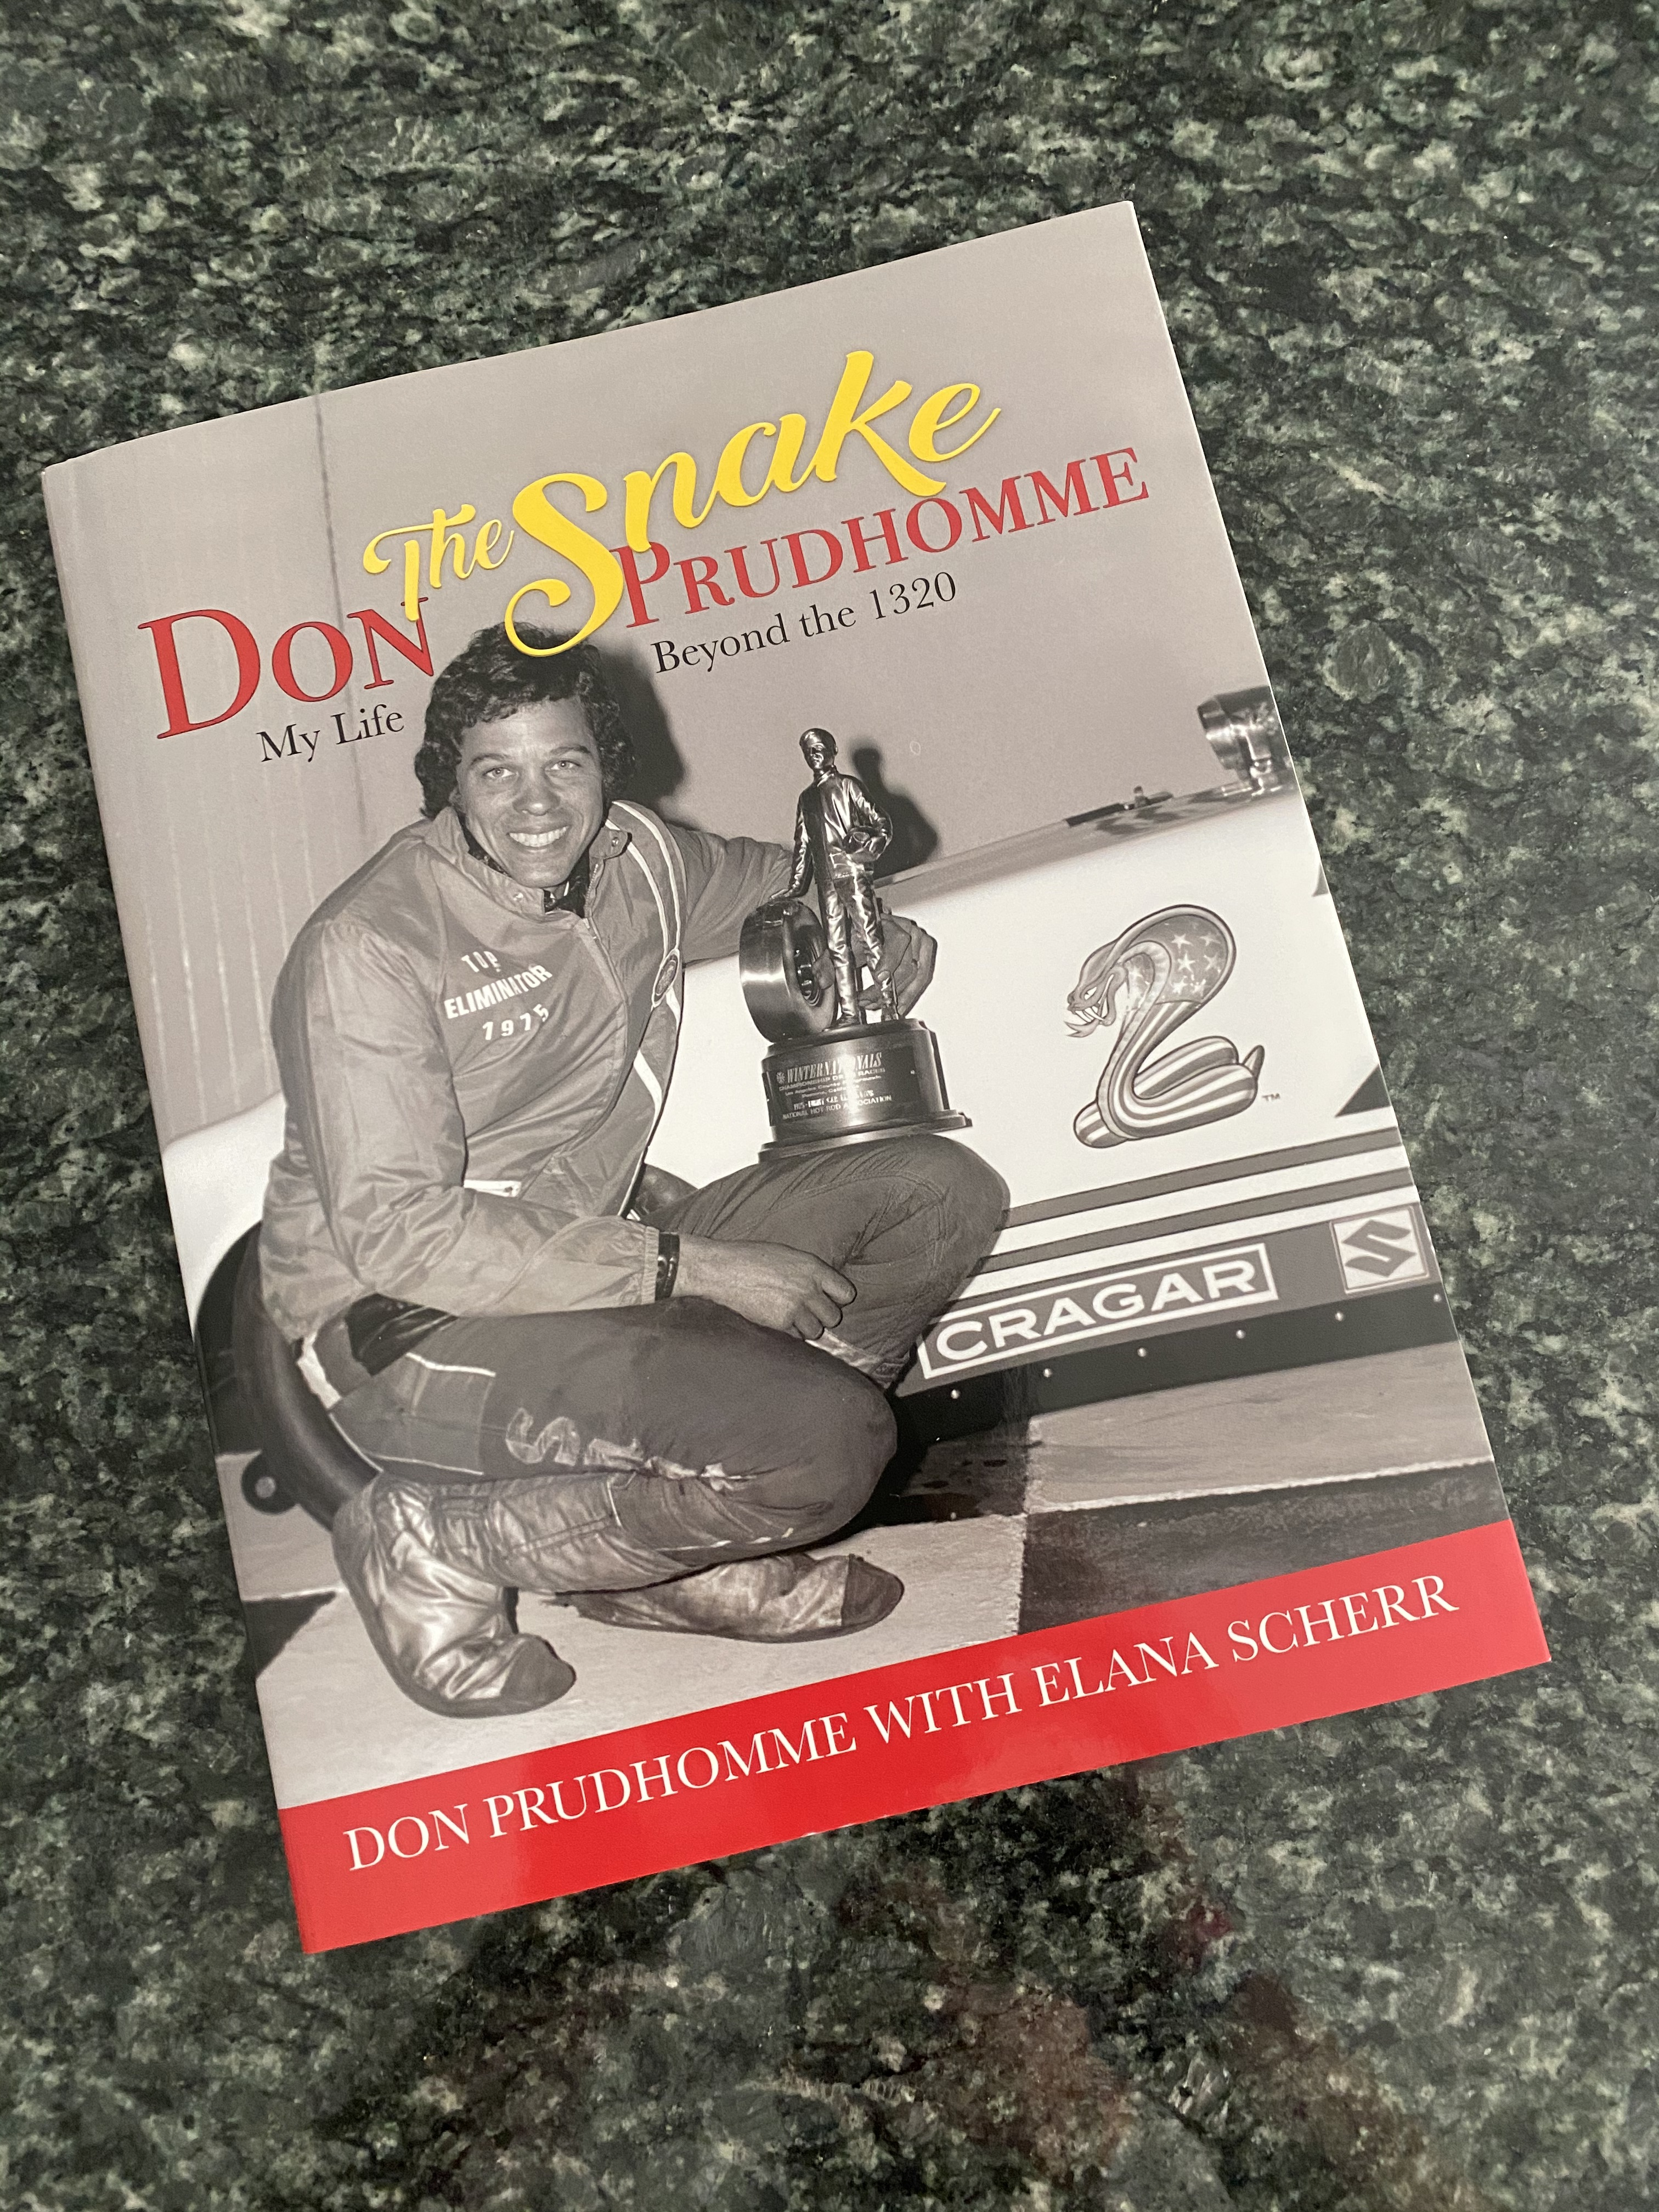 Buy The Book: Don Prudhomme – My Life Beyond The 1320 – Don Prudhomme with Elana Scherr